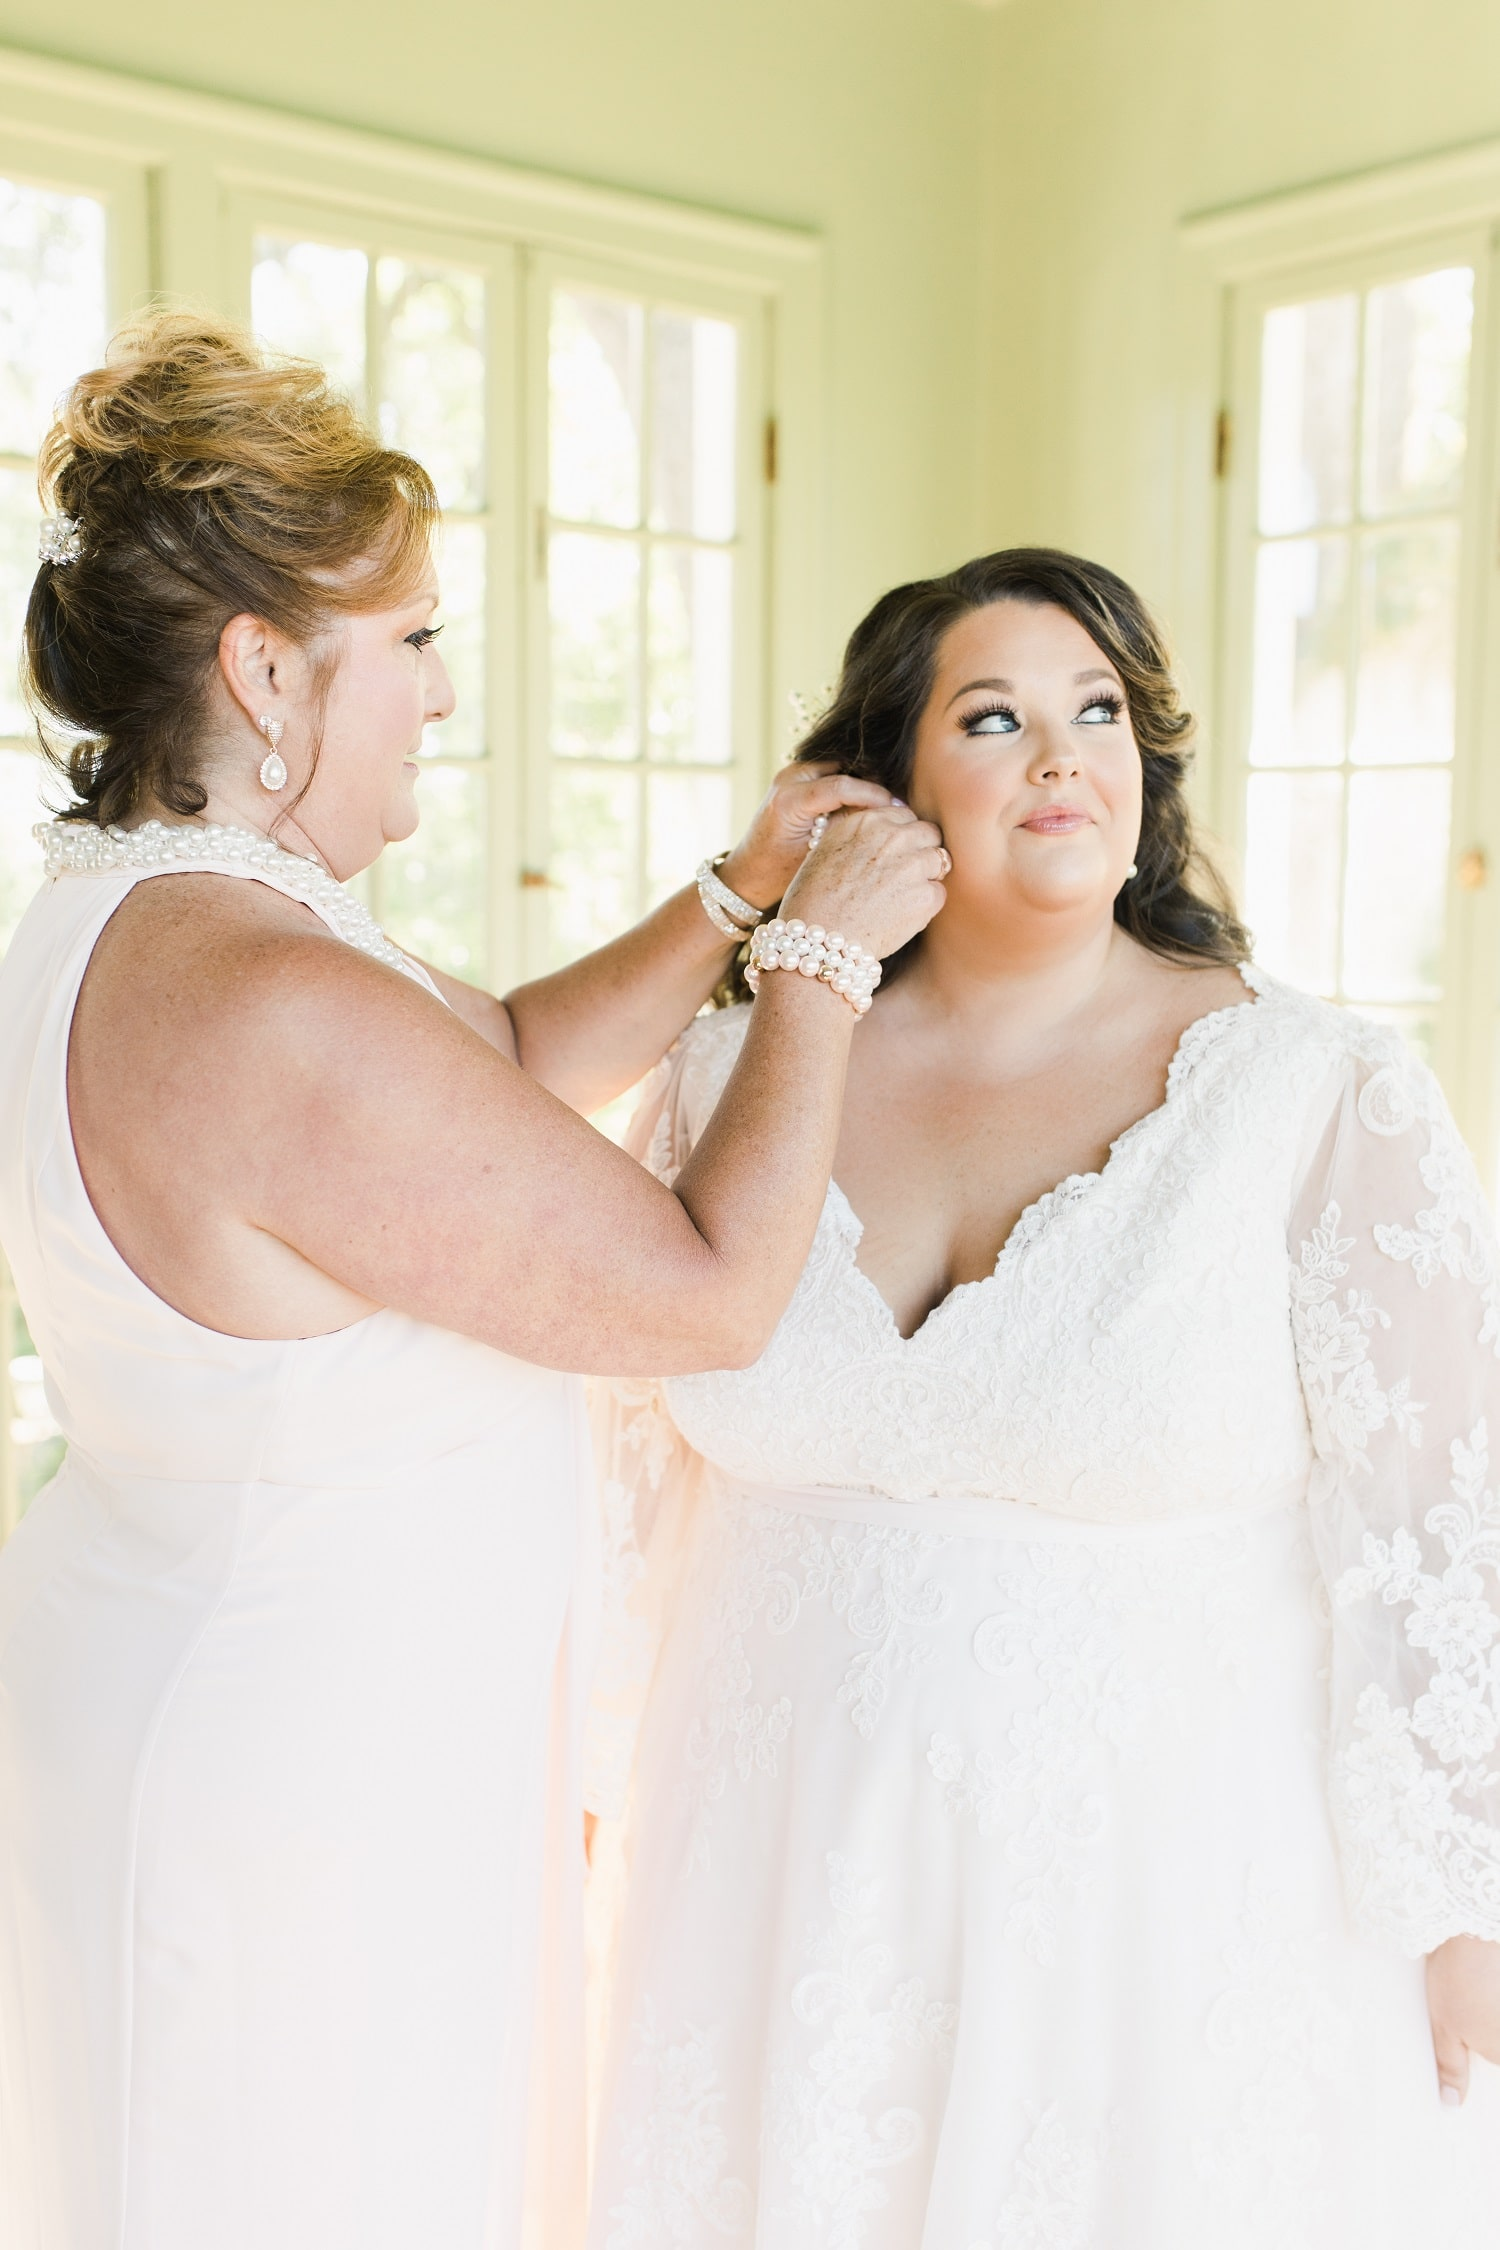 Weddings - Remember your perfect day beautifully